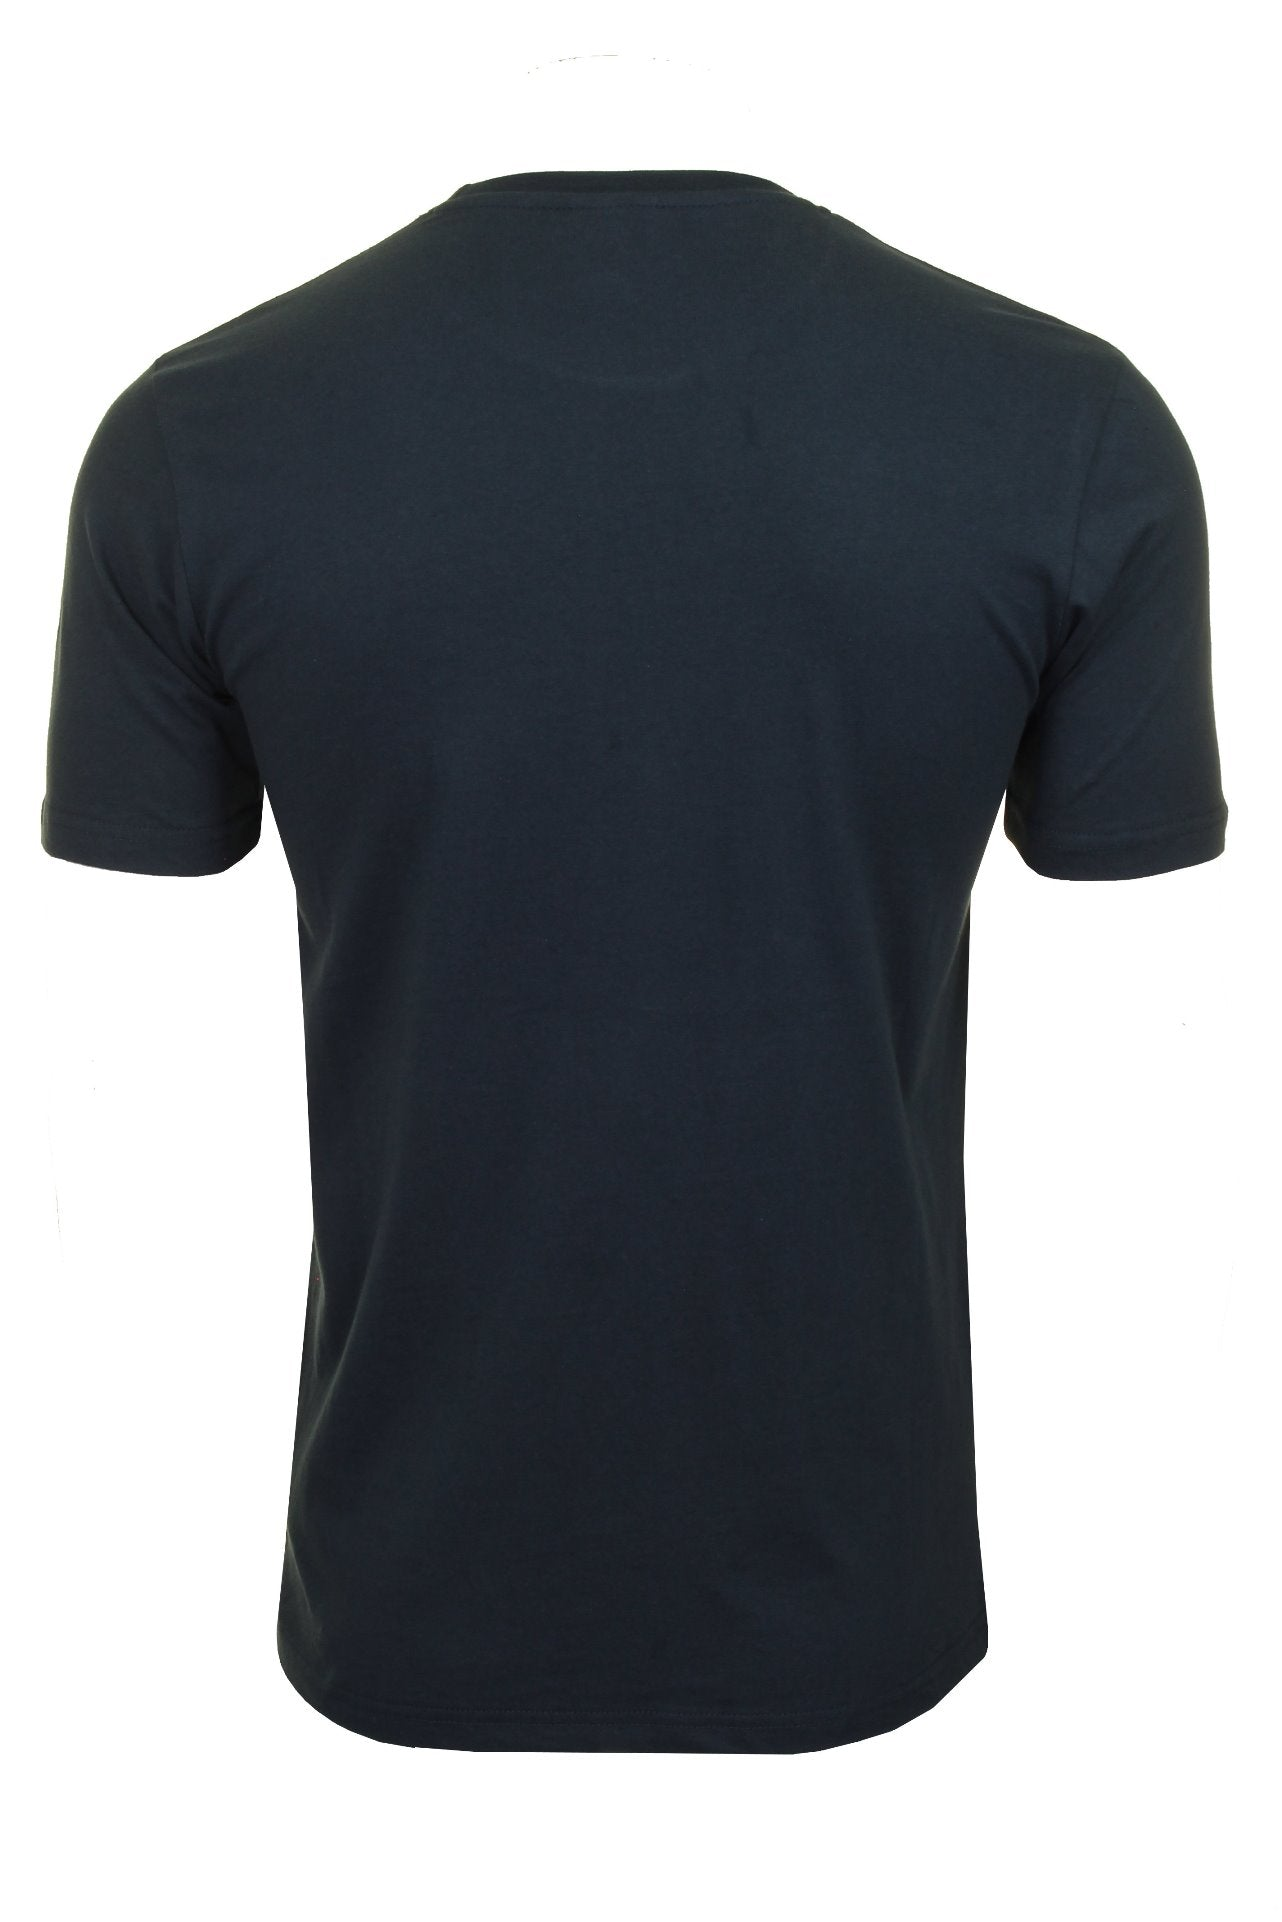 Ellesse Mens Logo Front Crew Neck T-Shirt 'PRADO' - Short Sleeved_03_Shc07405_Navy